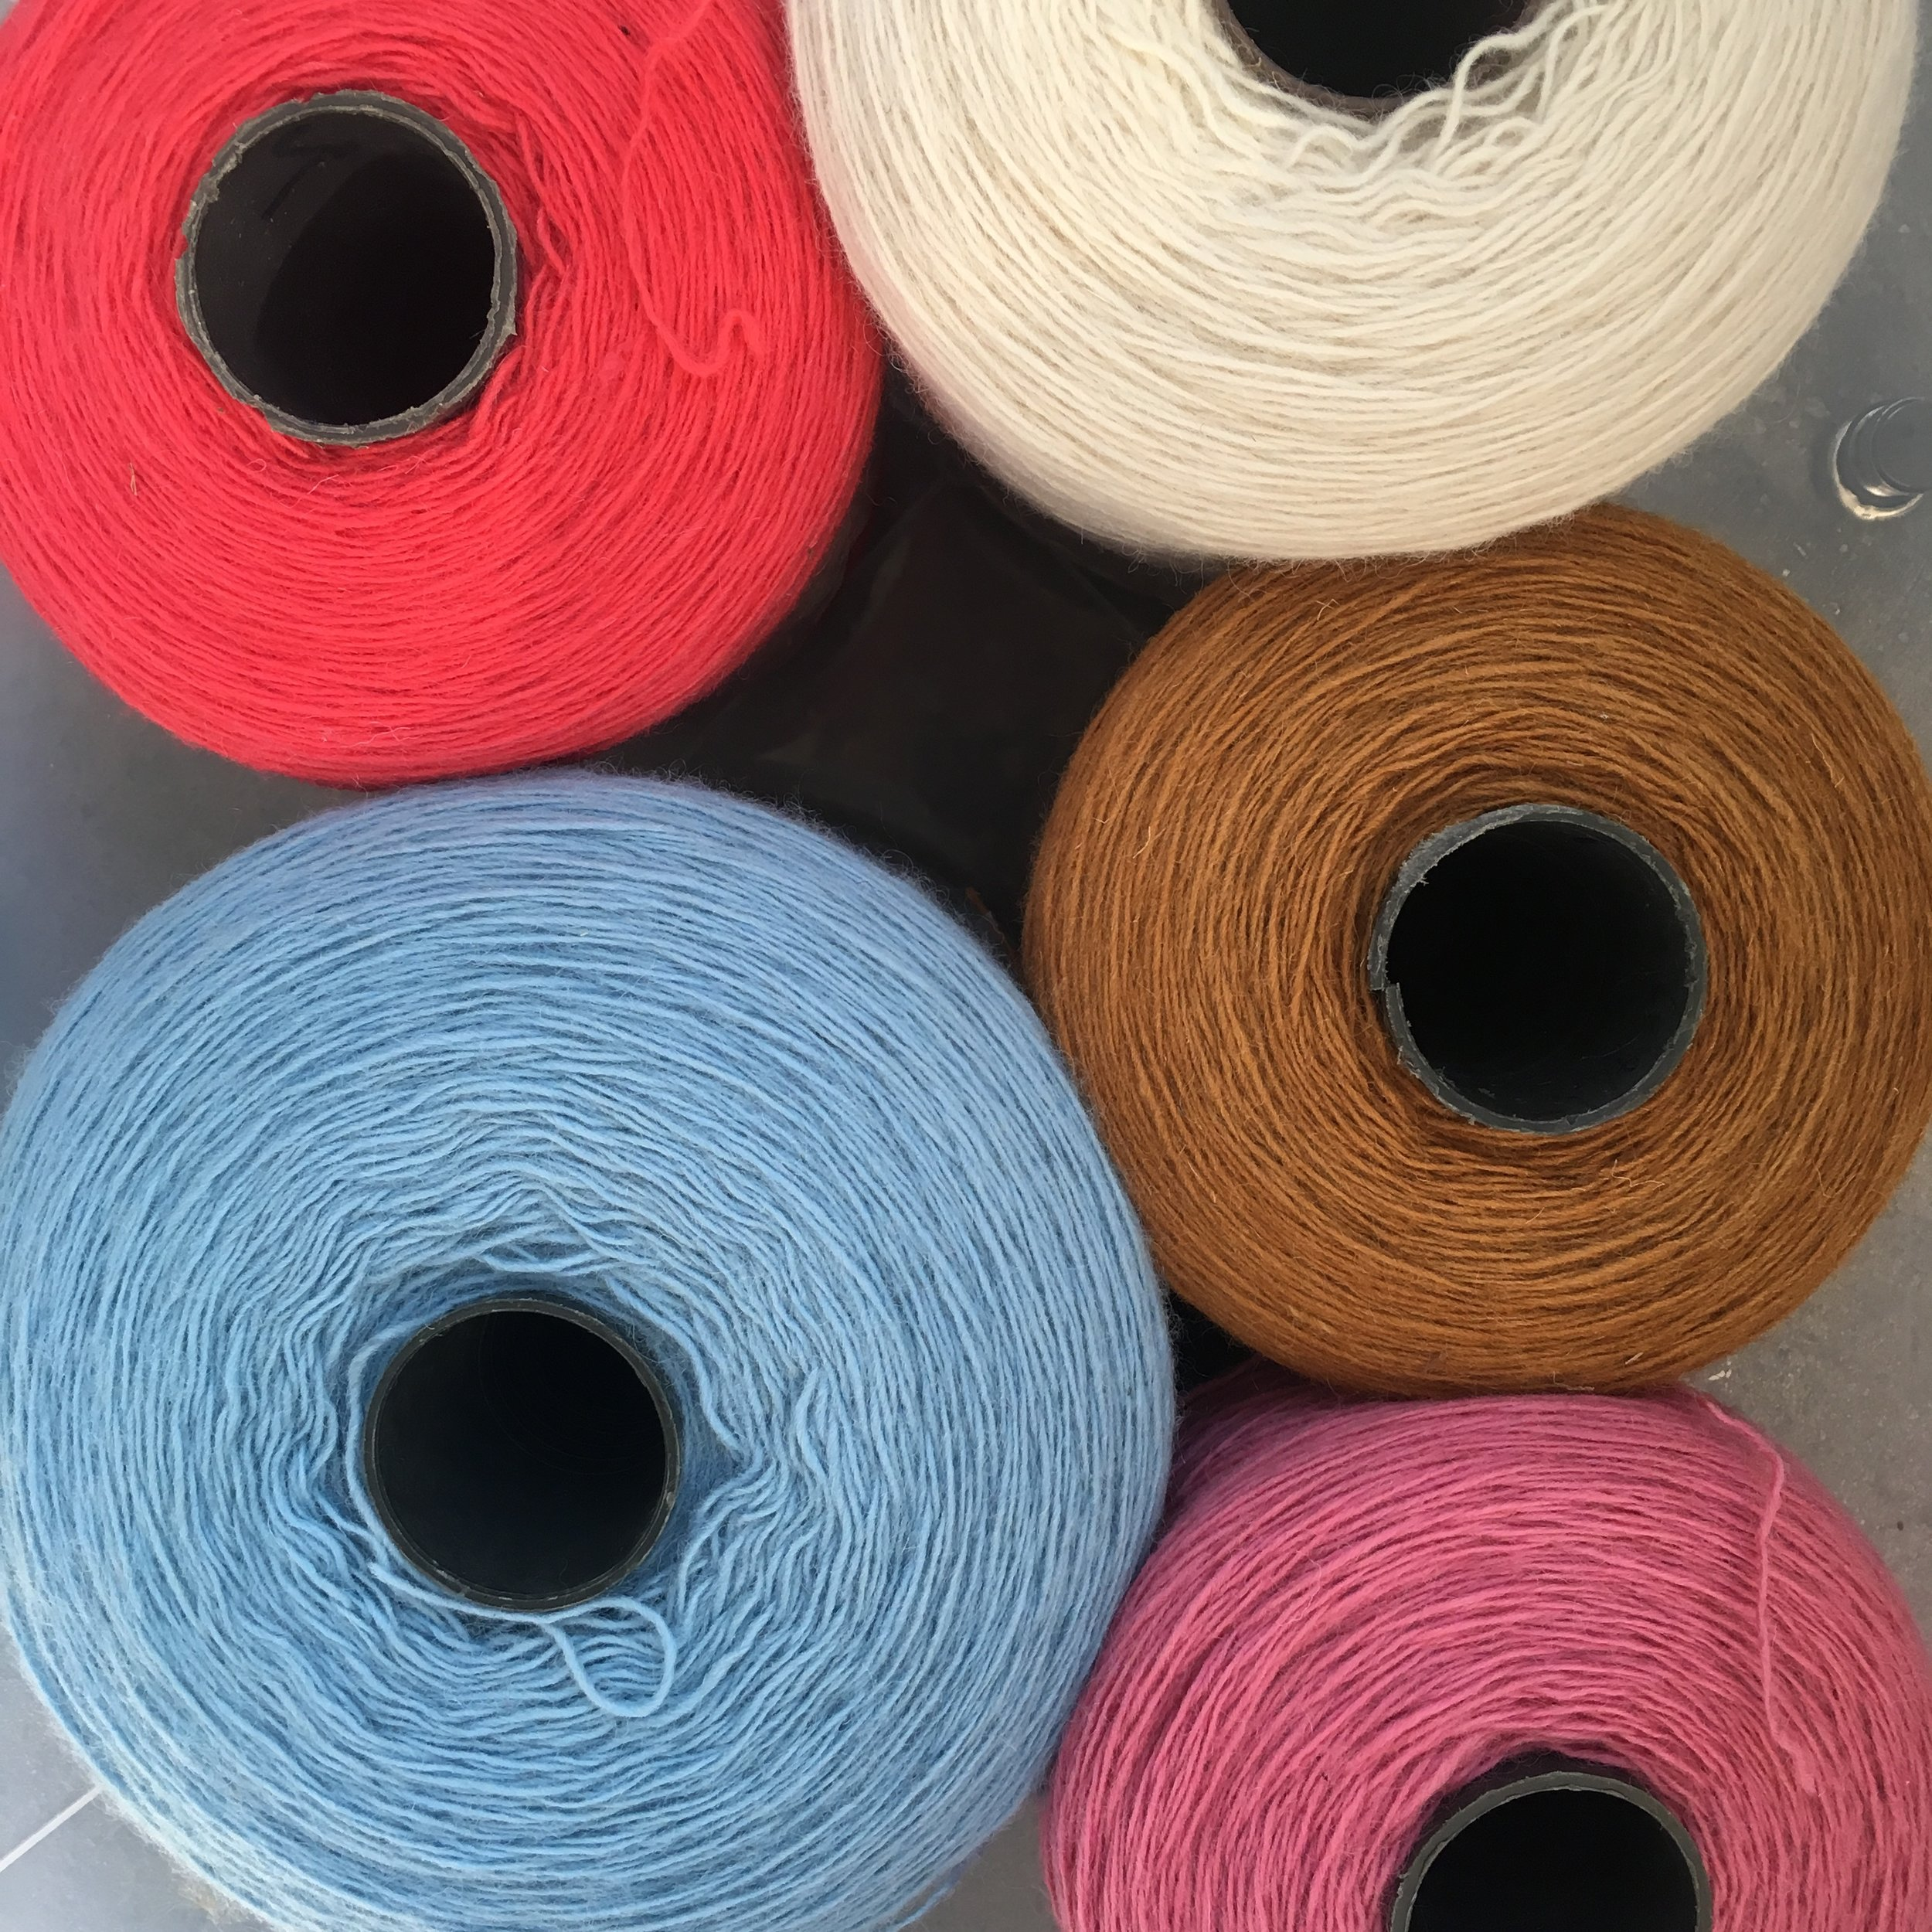 100% Wool Yarn 250+ Deluxe Color Collection - 17 6oz / 500g — TUFT LOVE